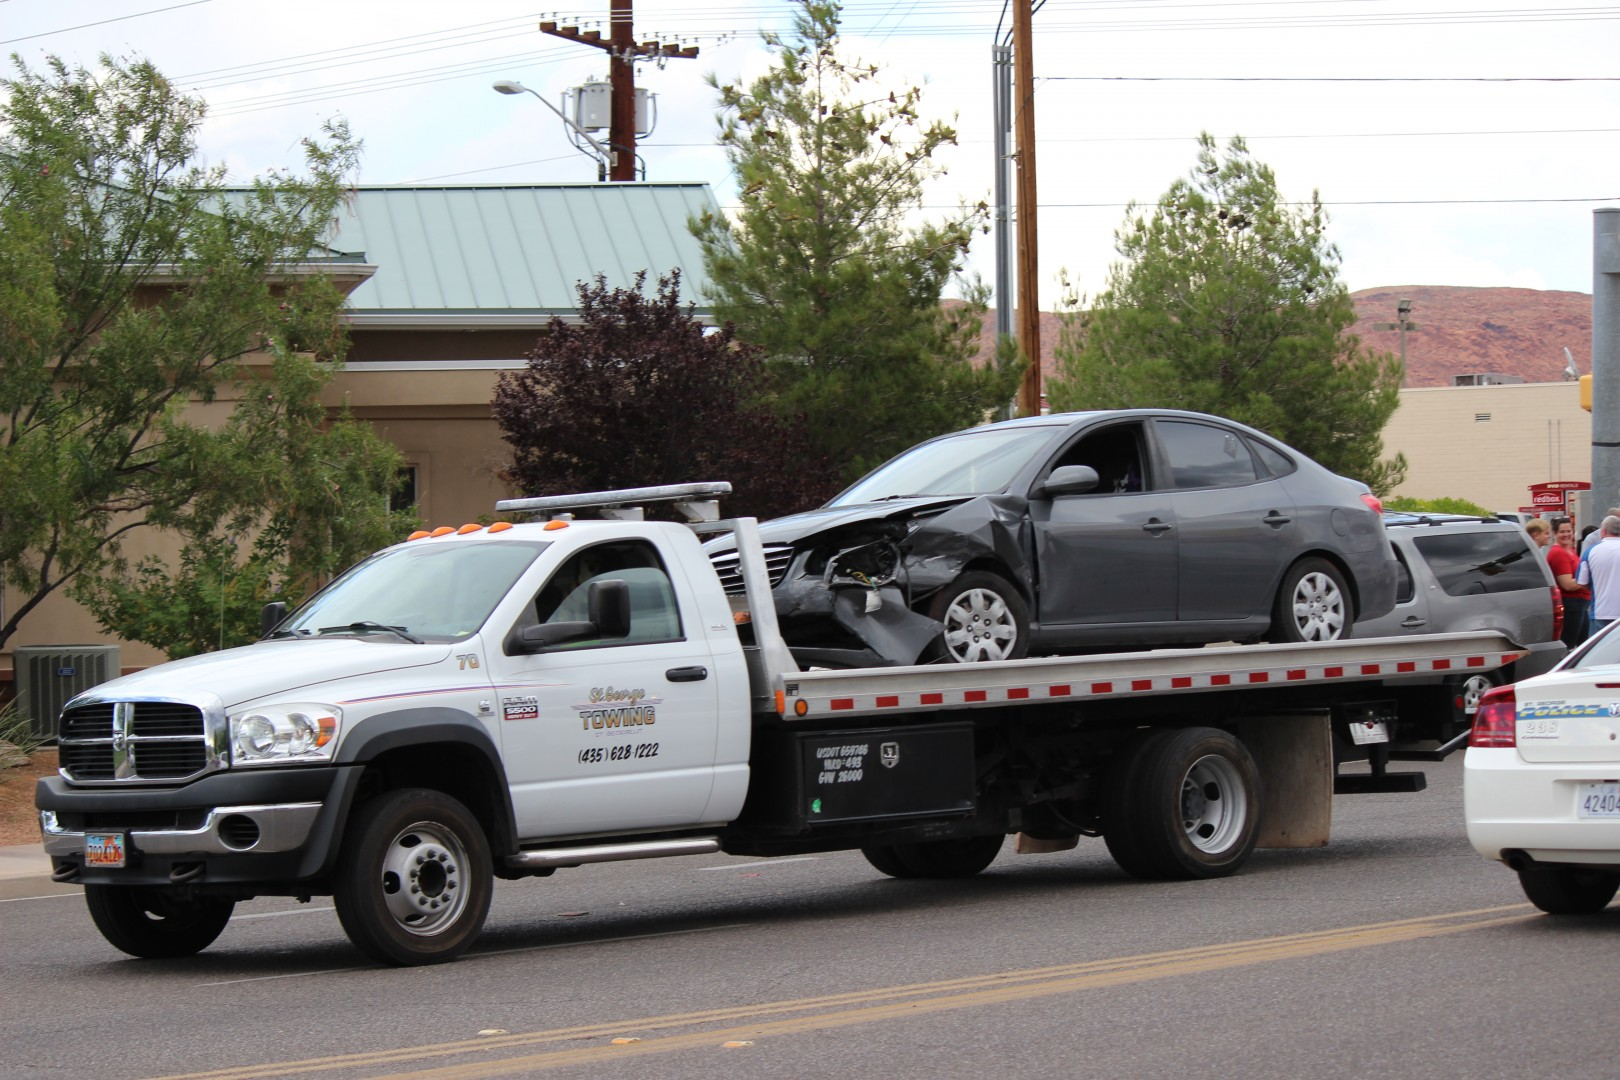 The Hyundai involved in the collision is towed away from the scene of wreck at the intersection of Sunset Blvd. and Dixie Drive on Sept. 4, 2014 | Photo by Devan Chavez, St. George News.